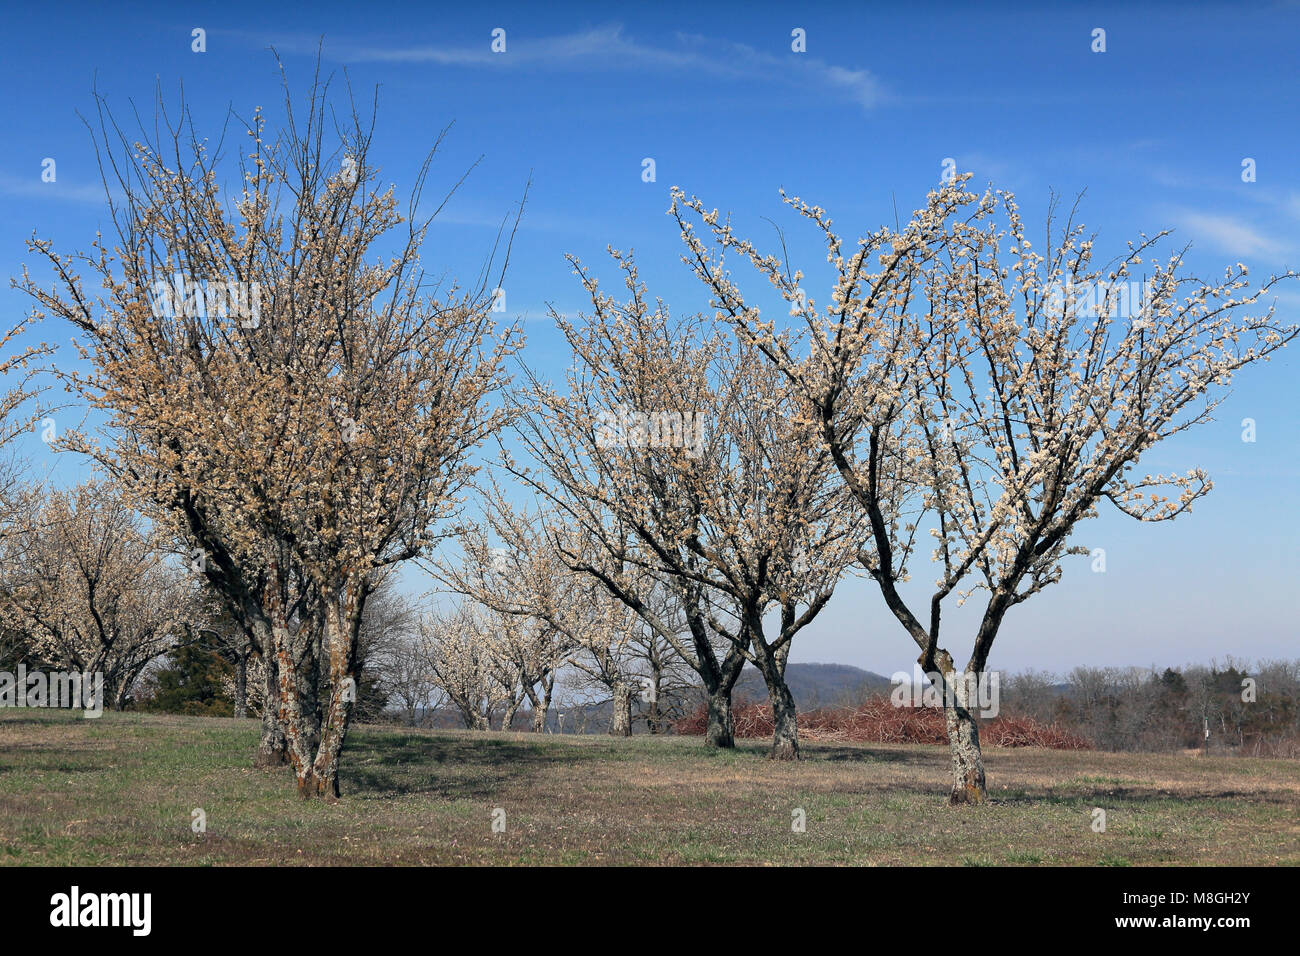 Plum Trees In Bloom At Persimmon Hill Farm In Lampe, Missouri. It Is A  Sunny Day With A Blue Sky And High White Clouds